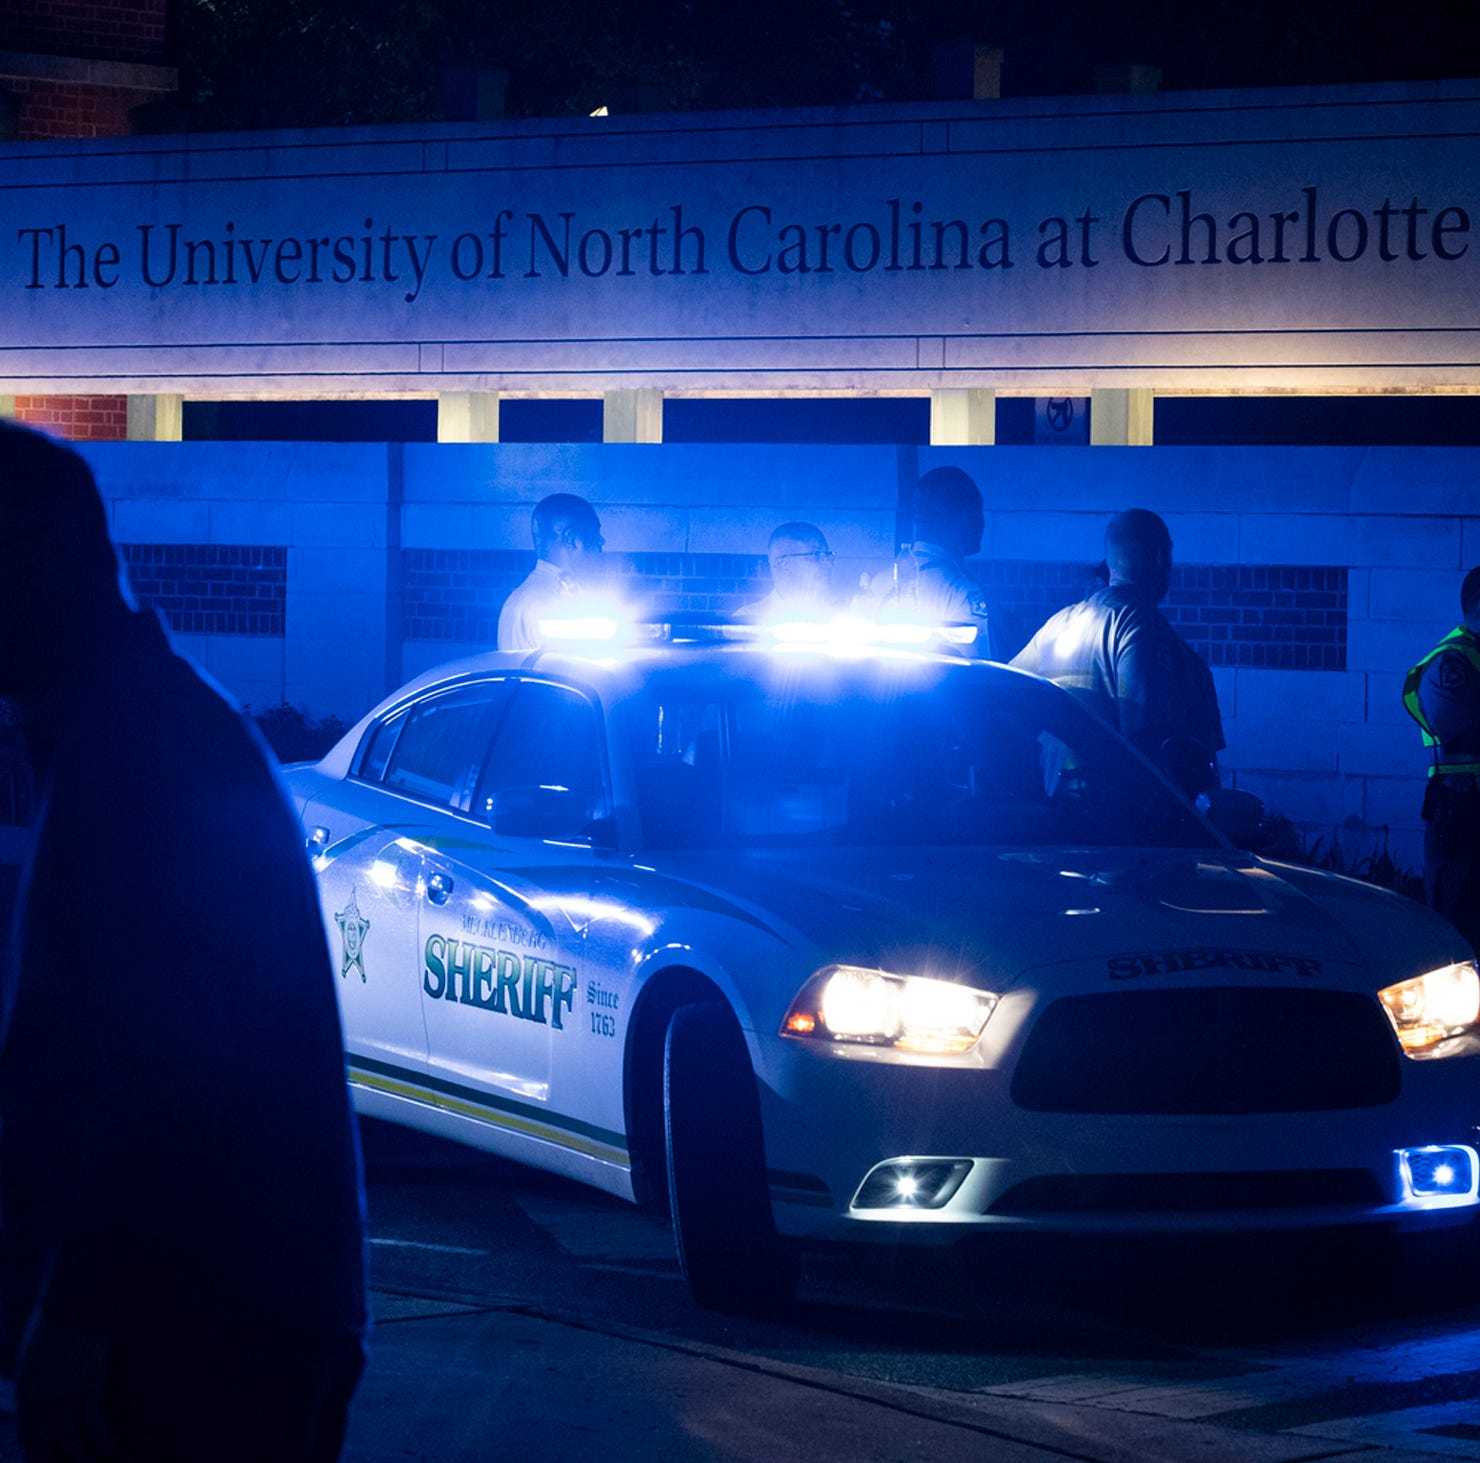 Police secure the main entrance to UNC Charlotte after a fatal campus shooting on Tuesday.